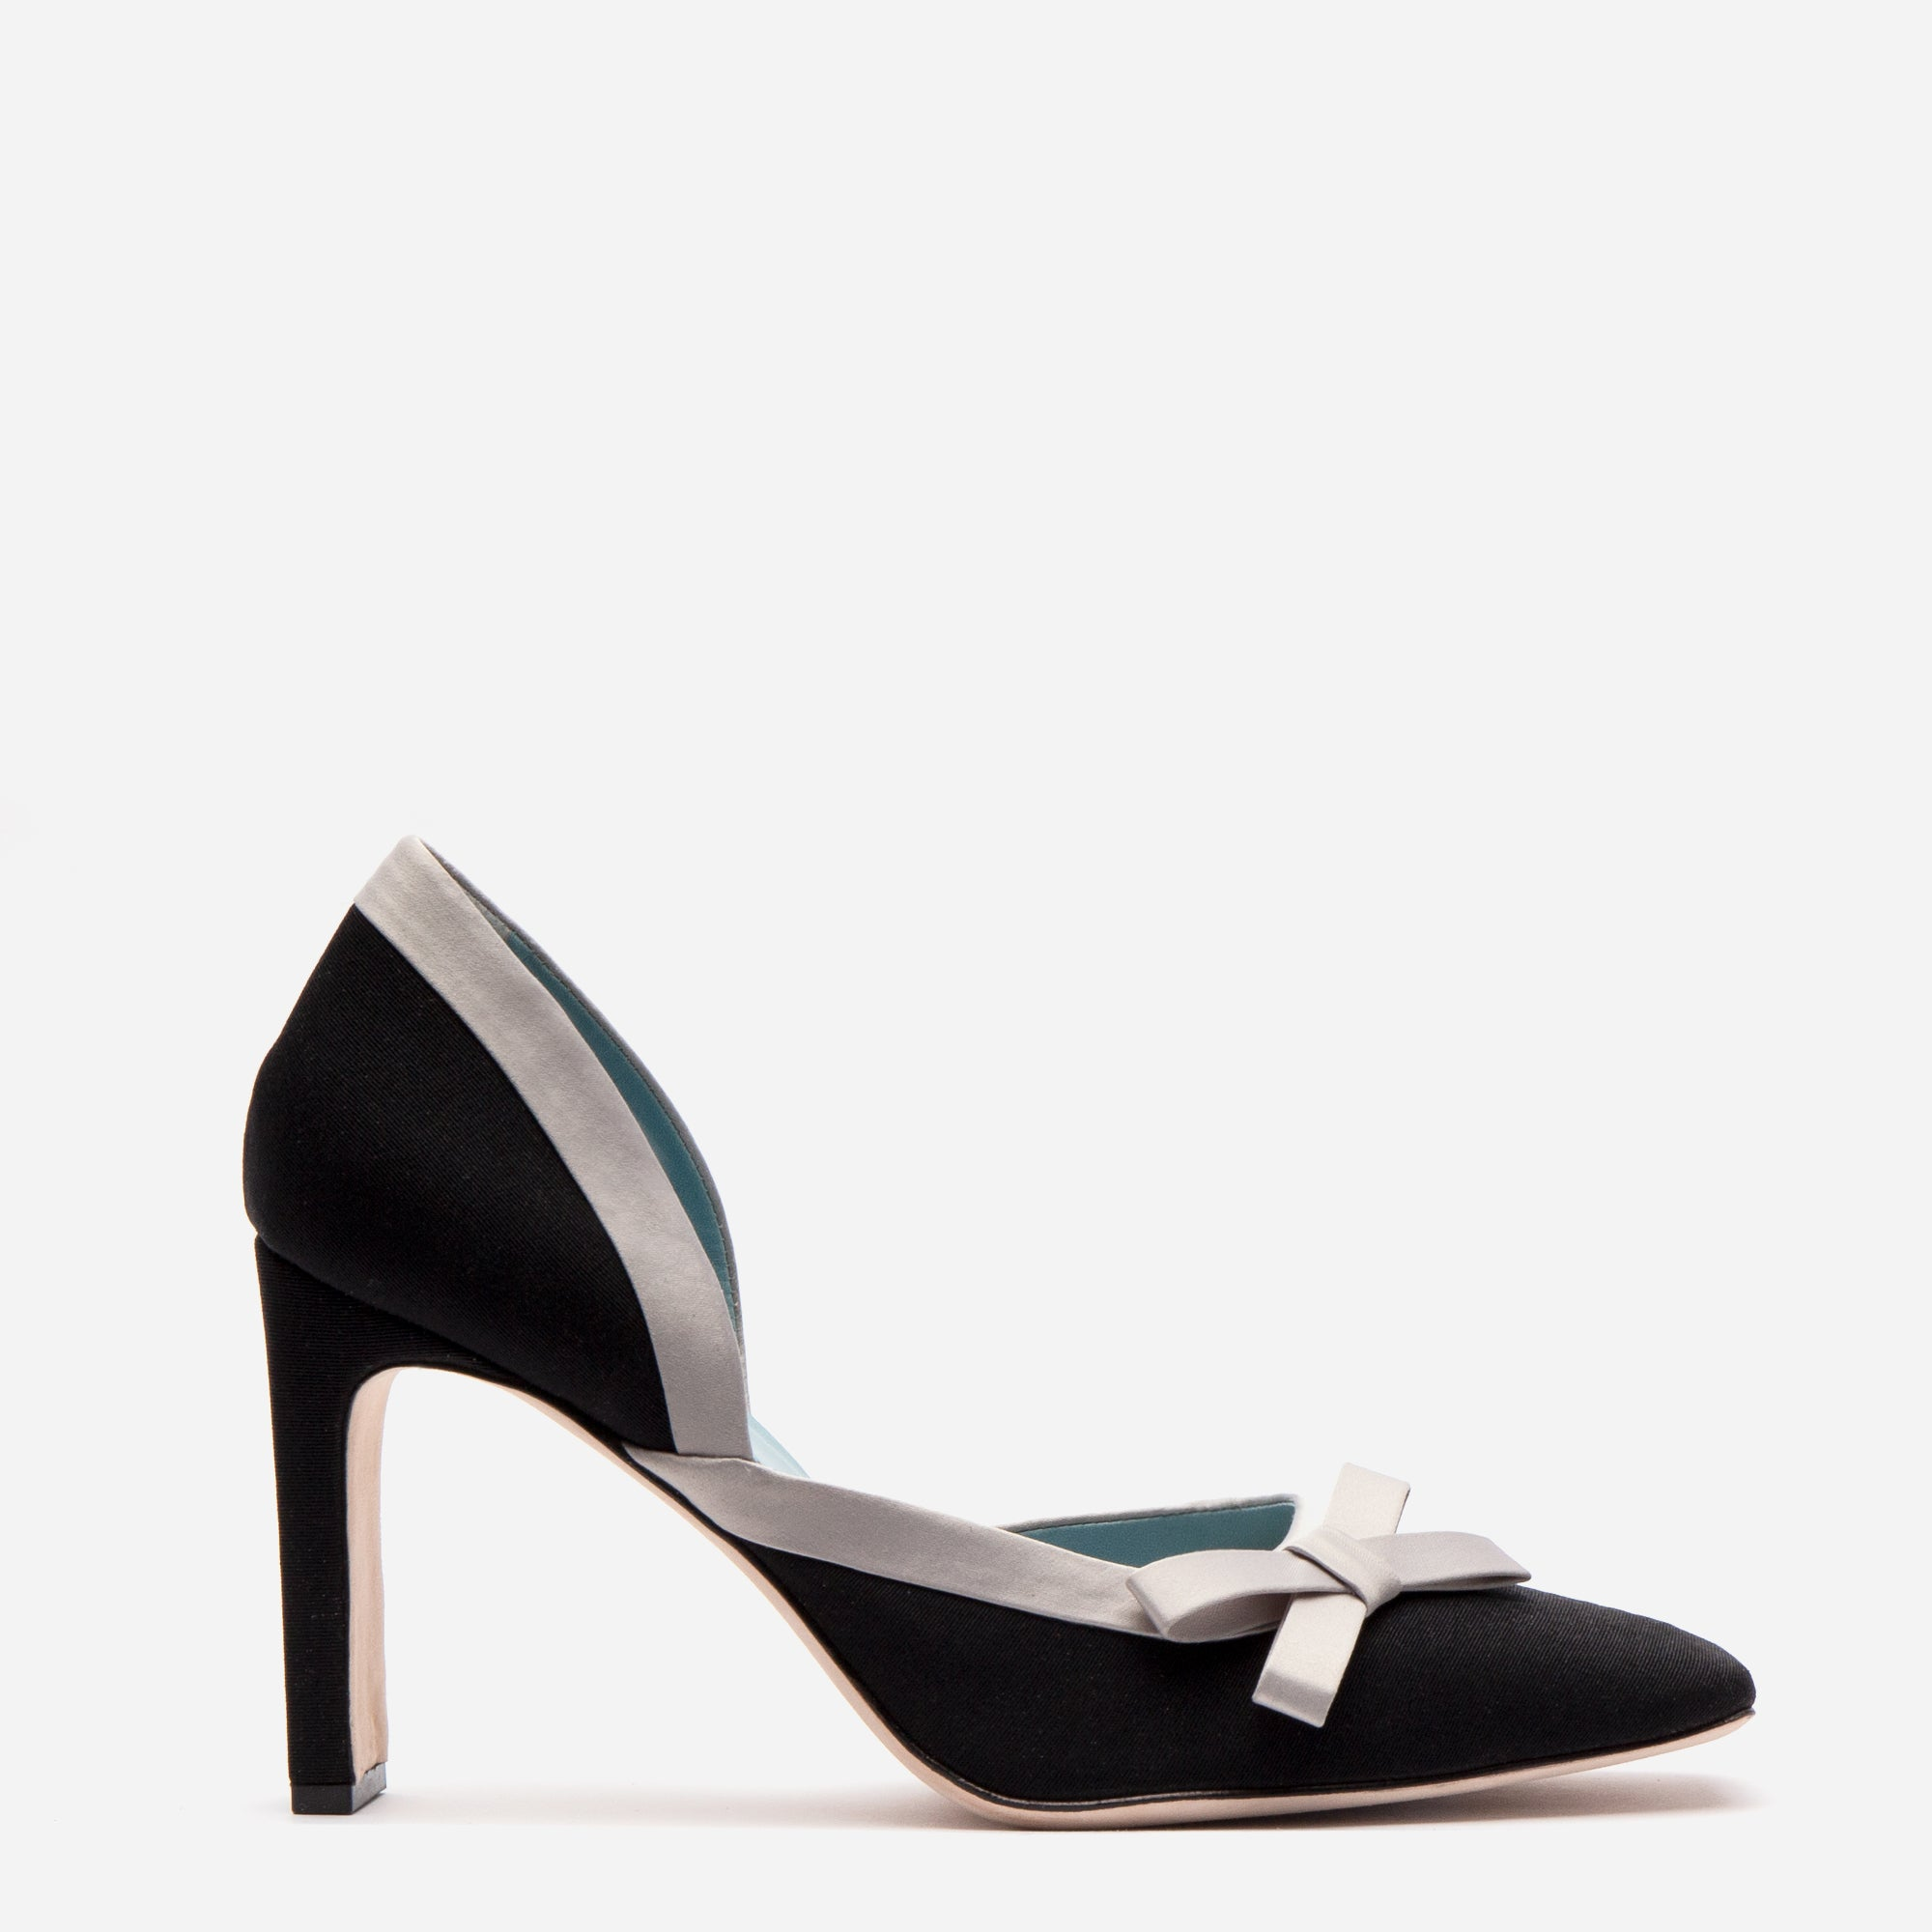 Sinclair Grosgrain Satin Heels Black Oyster *FINAL SALE*